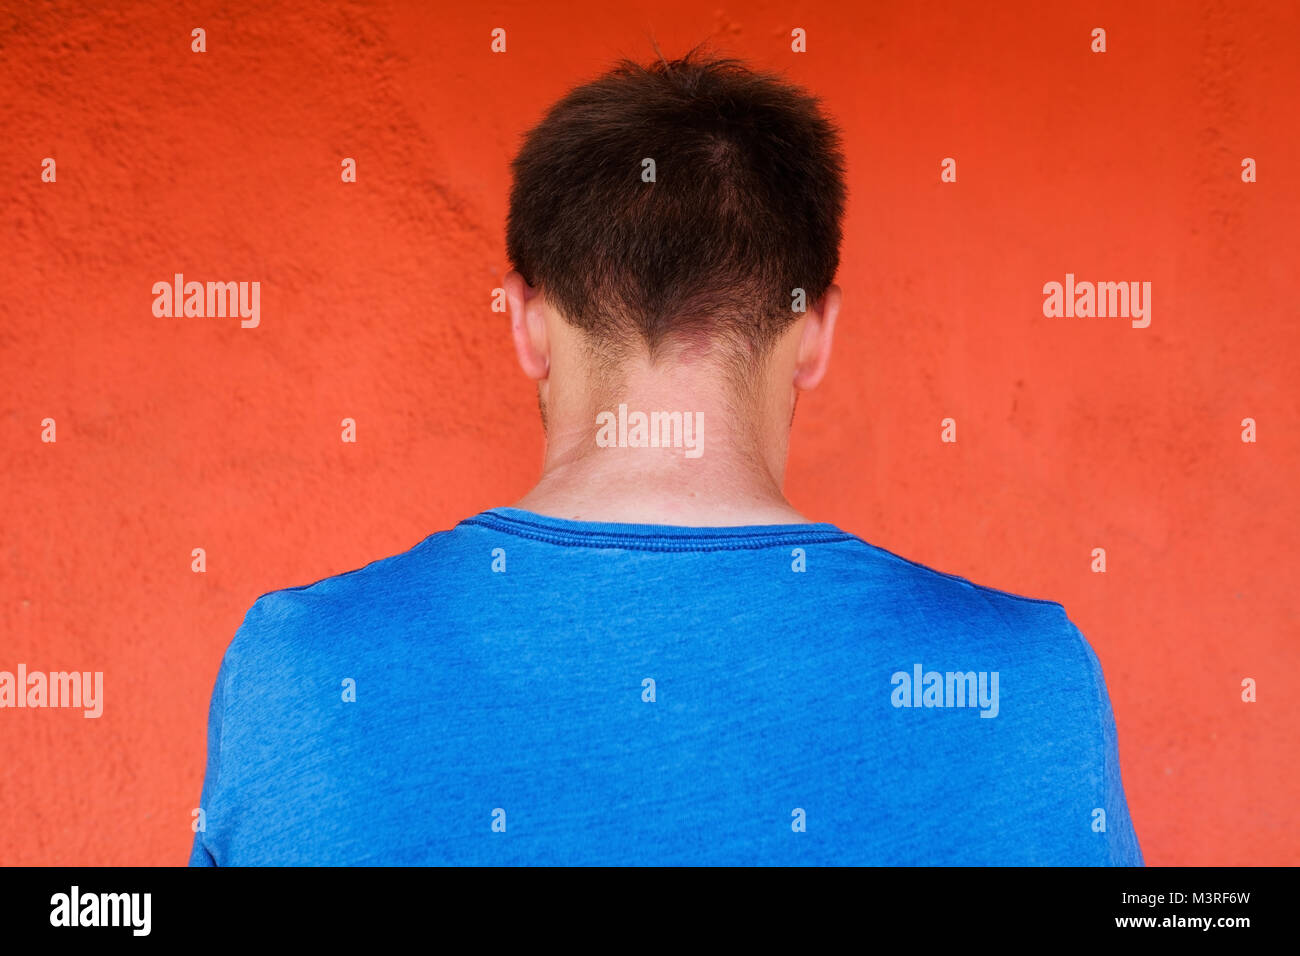 Back pose, photo of young man looks ahead. He feels shame. He is alone and hide his face. - Stock Image